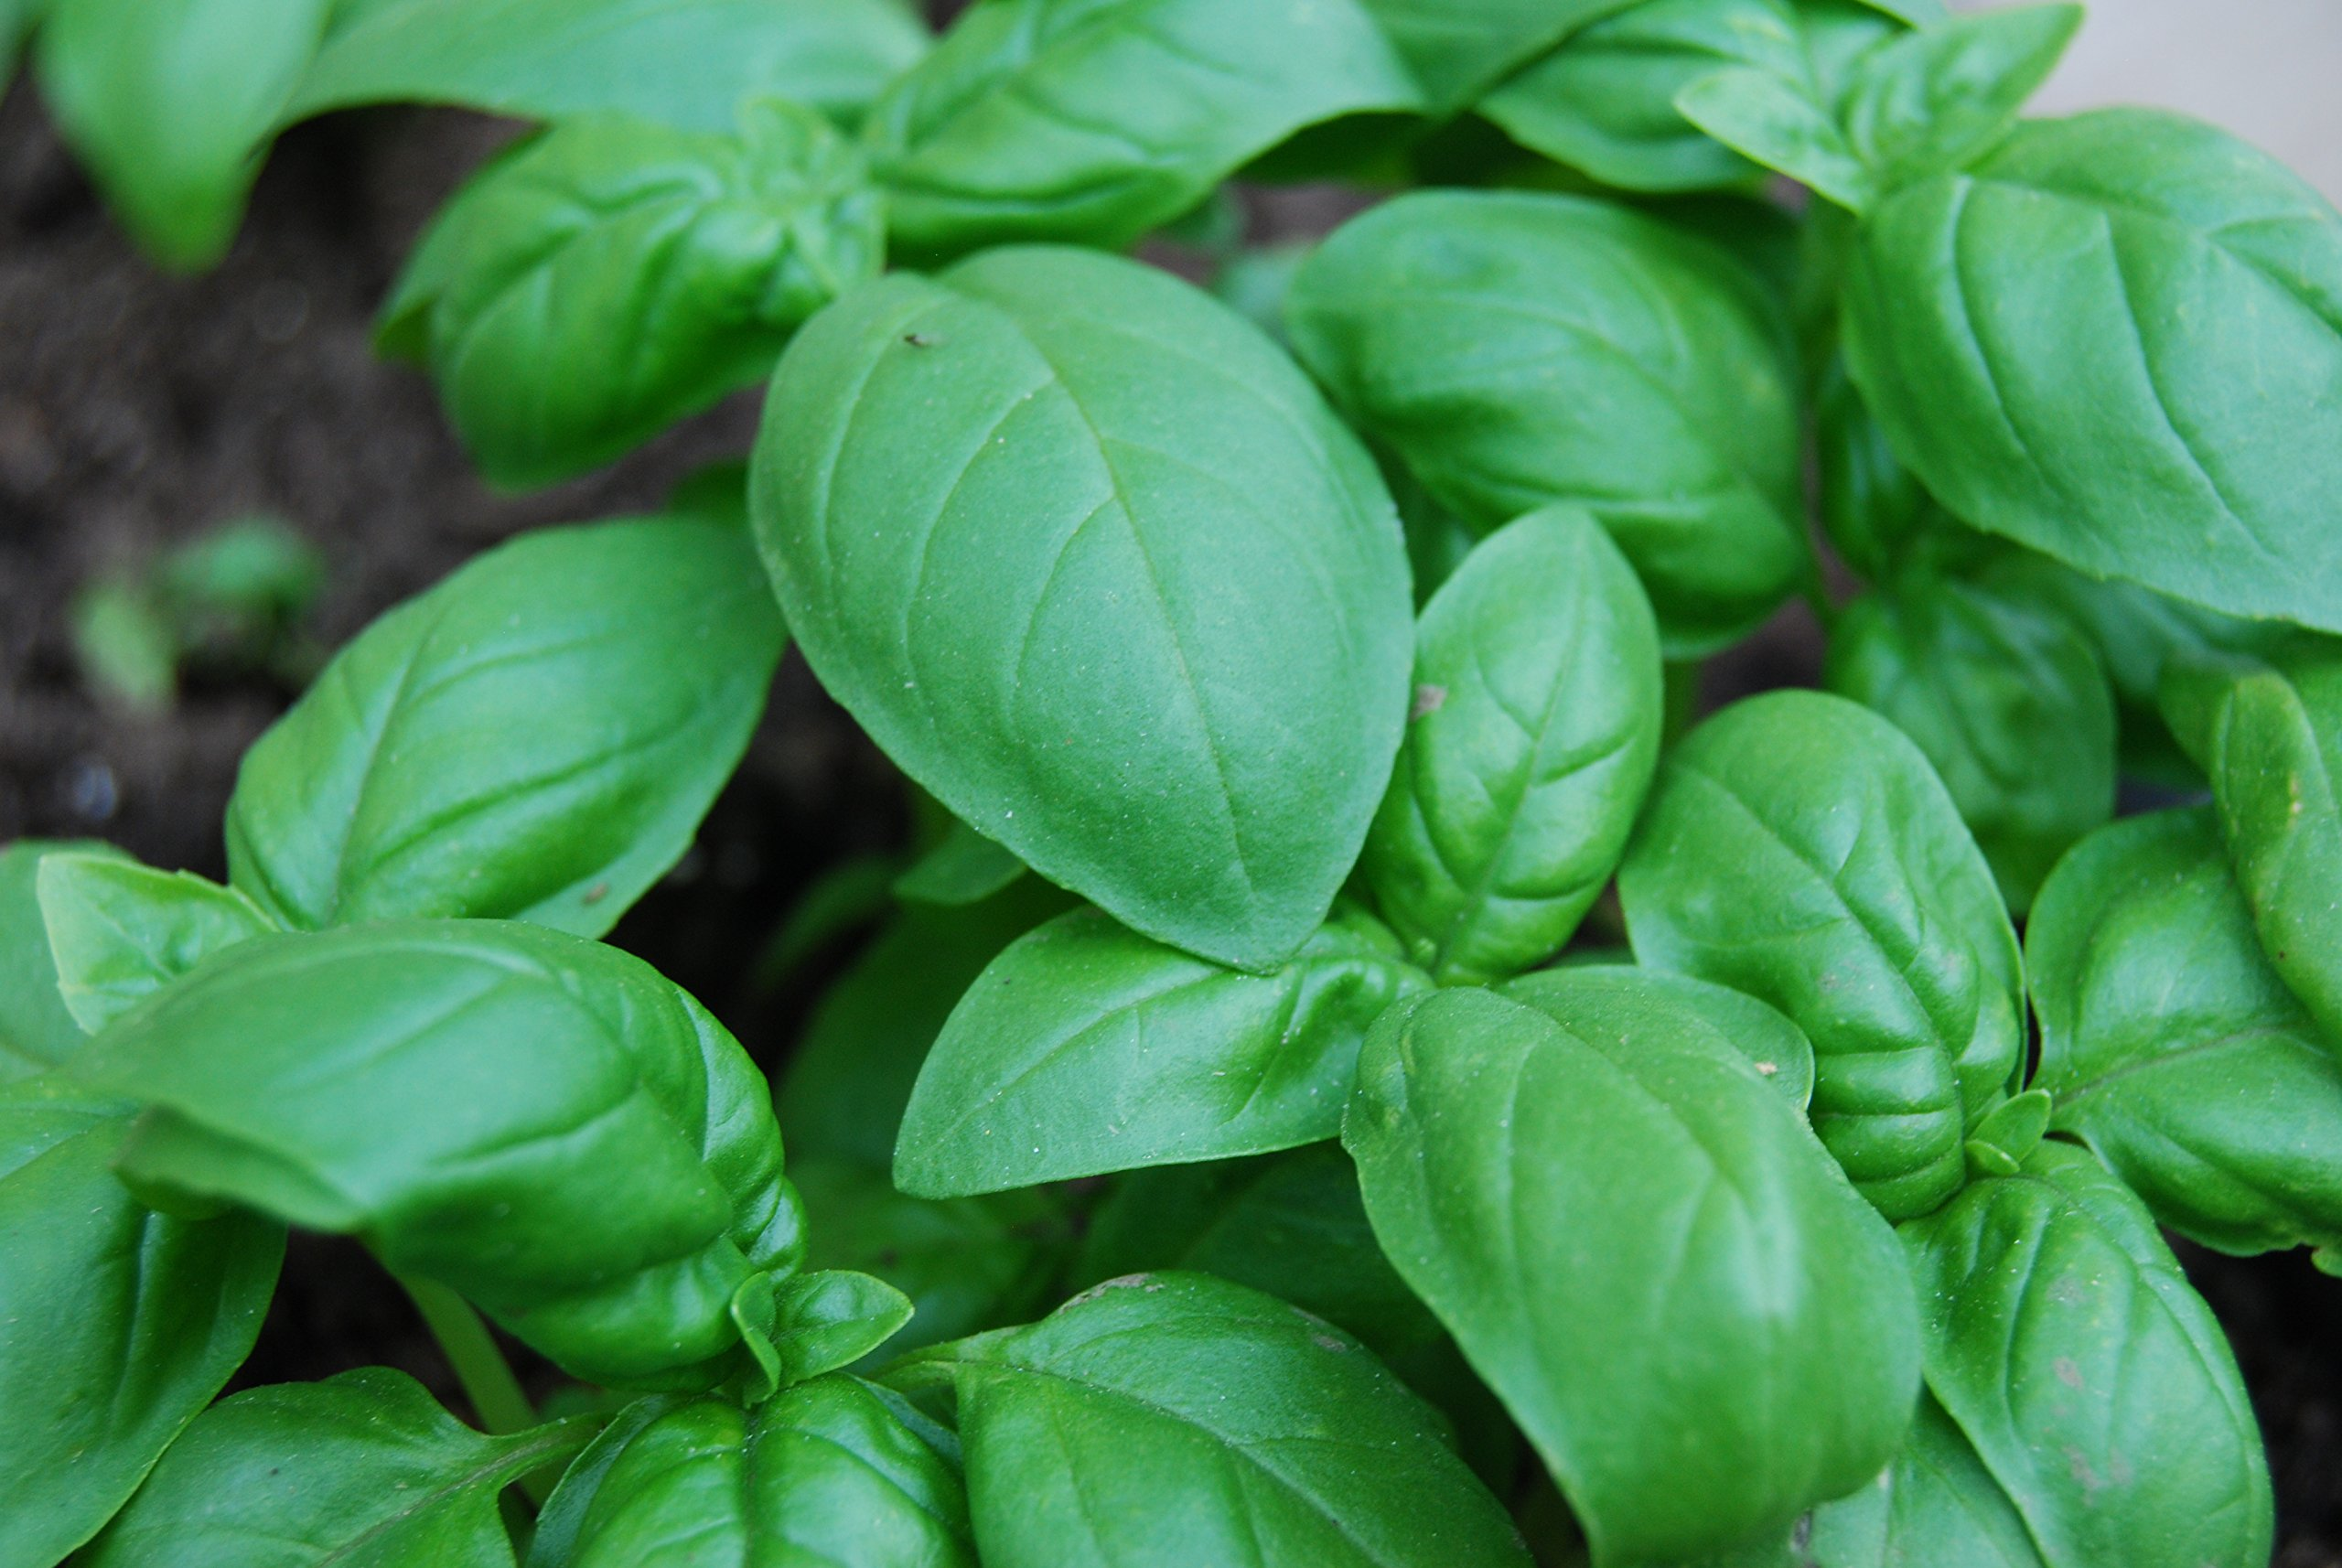 Clovers Garden Sweet Basil Herb Plant- Non GMO- Two (2) Live Plants - Not Seeds -Each 4''-7''tall- in 3.5 Inch Pots